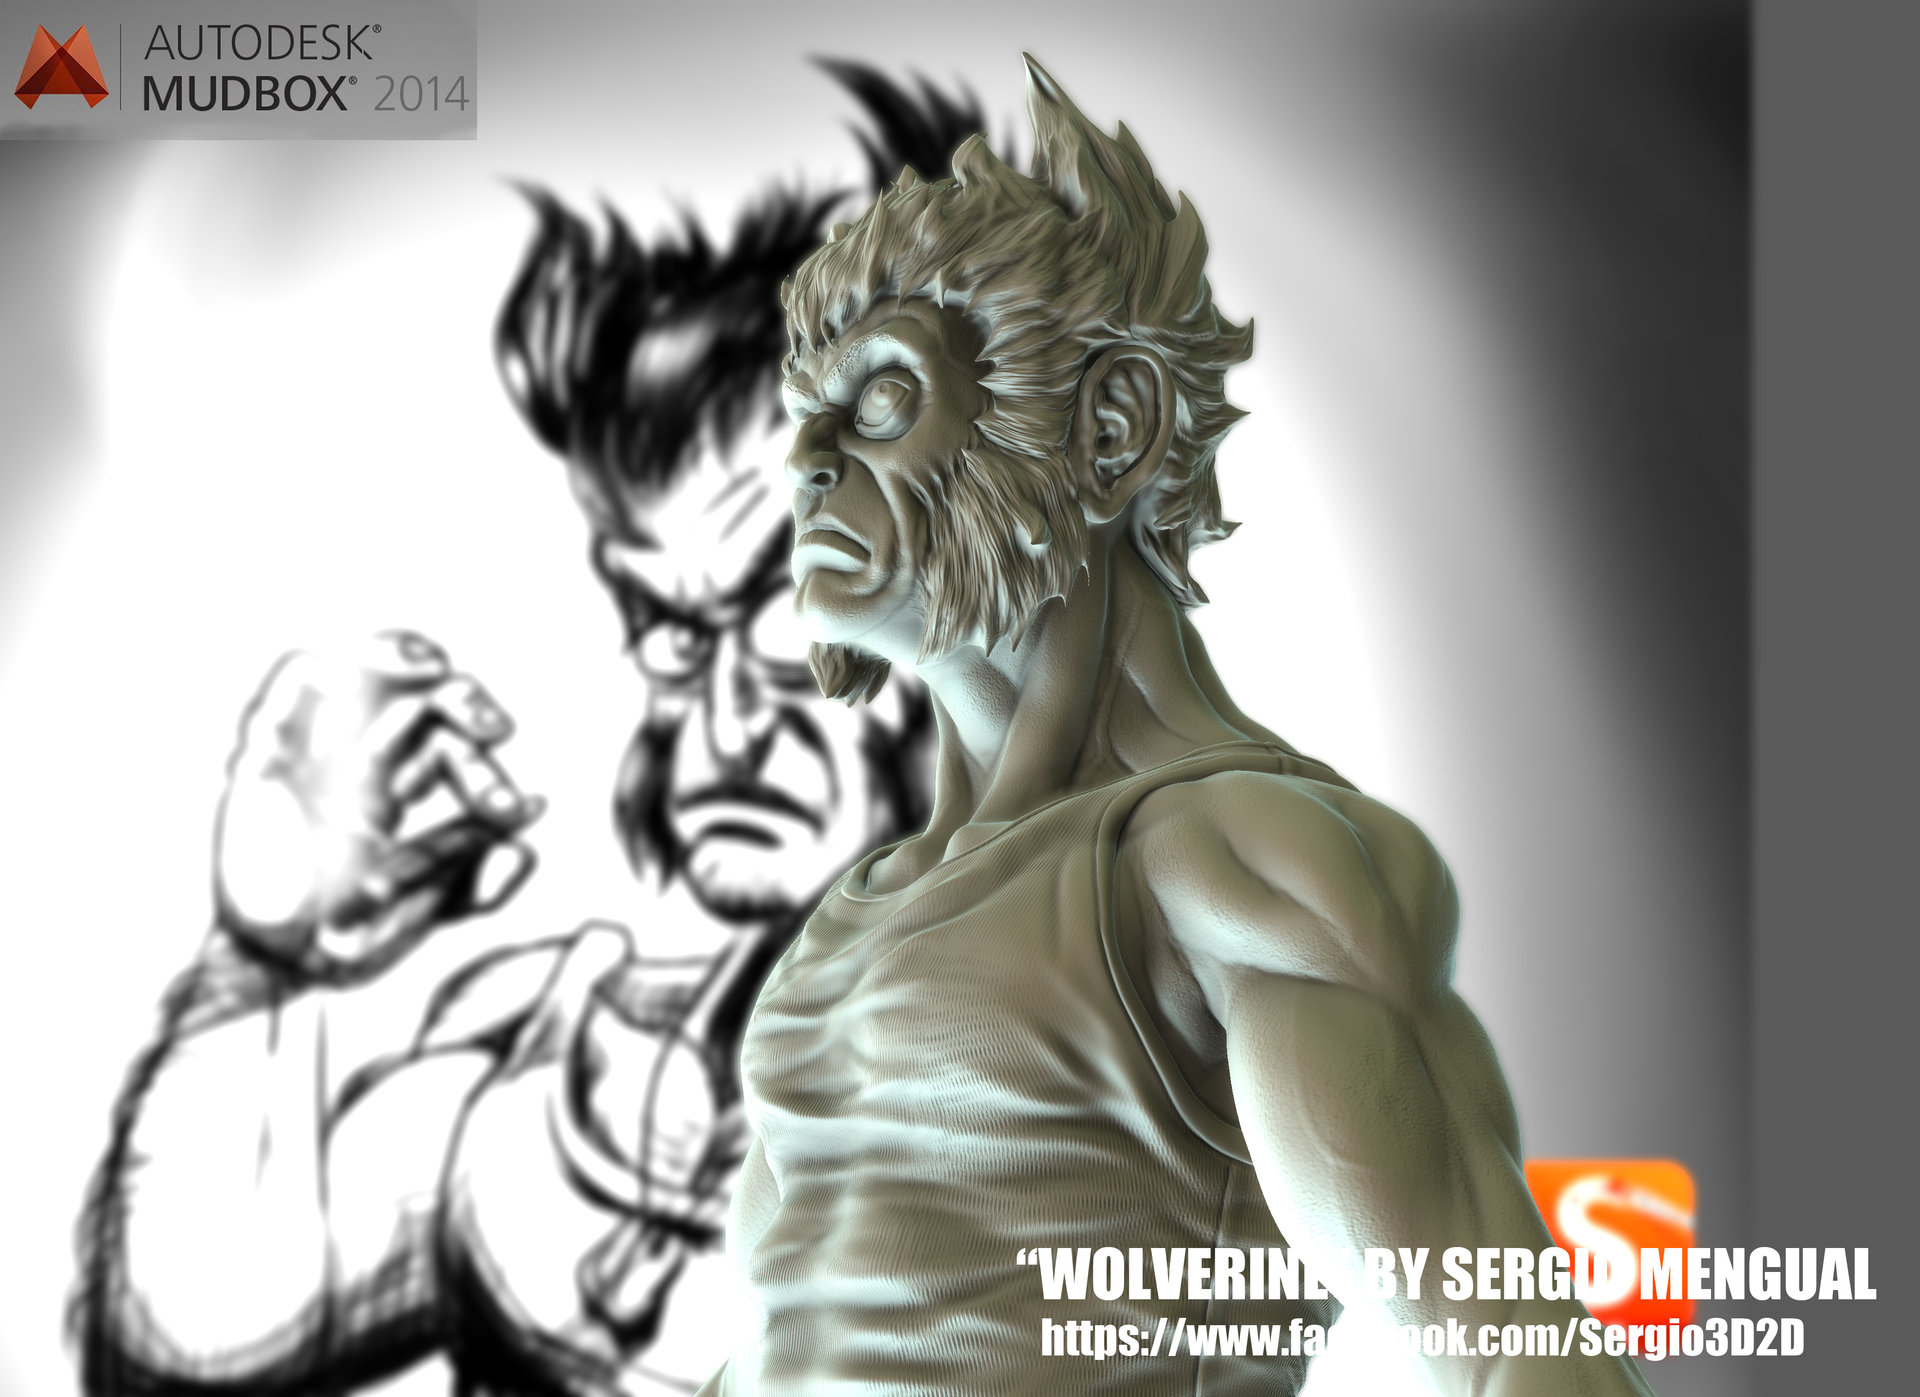 Sergio gabriel mengual wolverine publish3